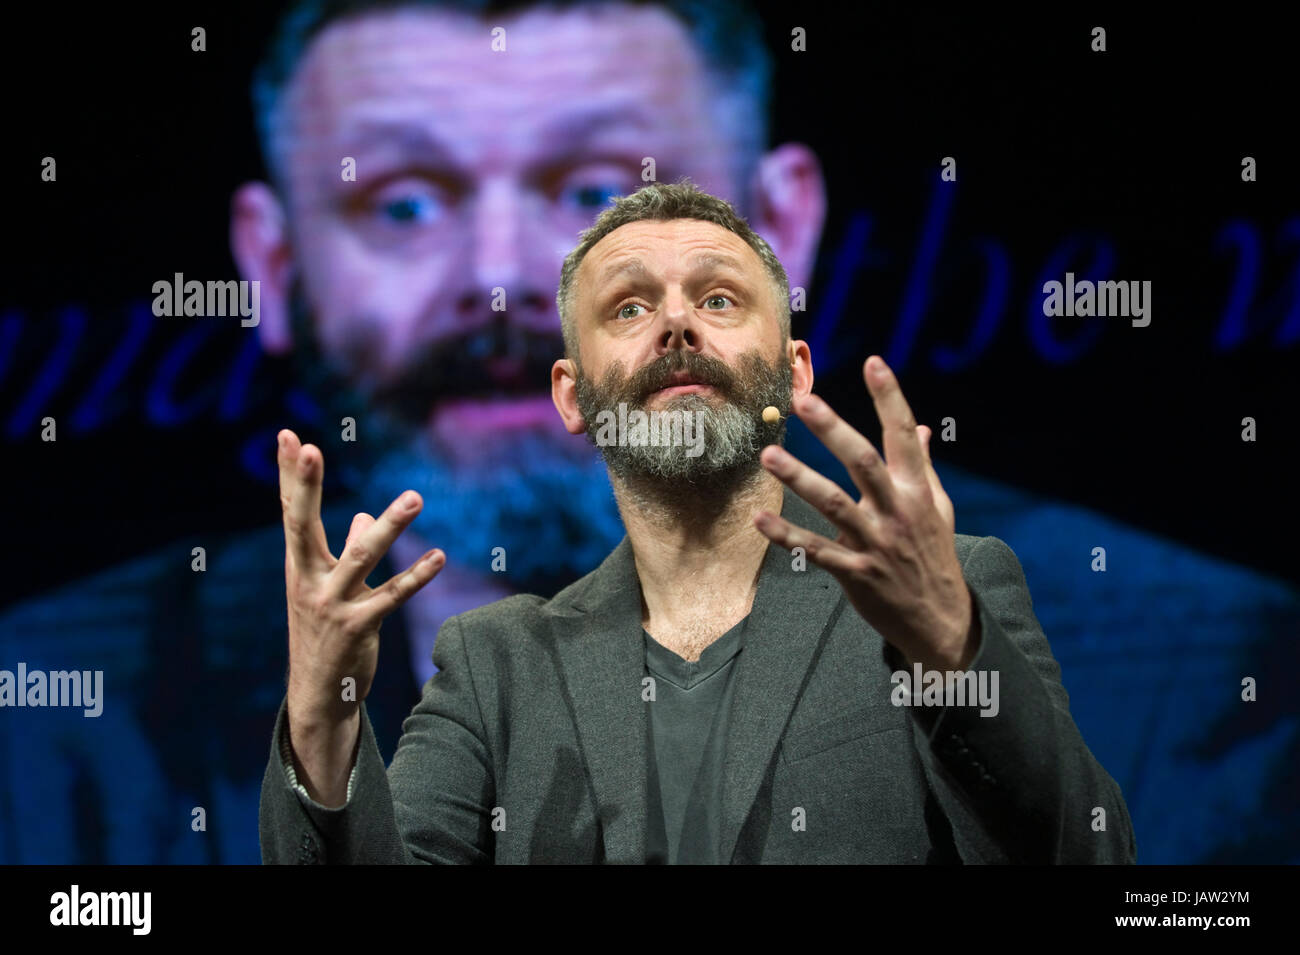 michael-sheen-actor-giving-the-aneurin-bevan-lecture-on-stage-at-hay-JAW2YM.jpg